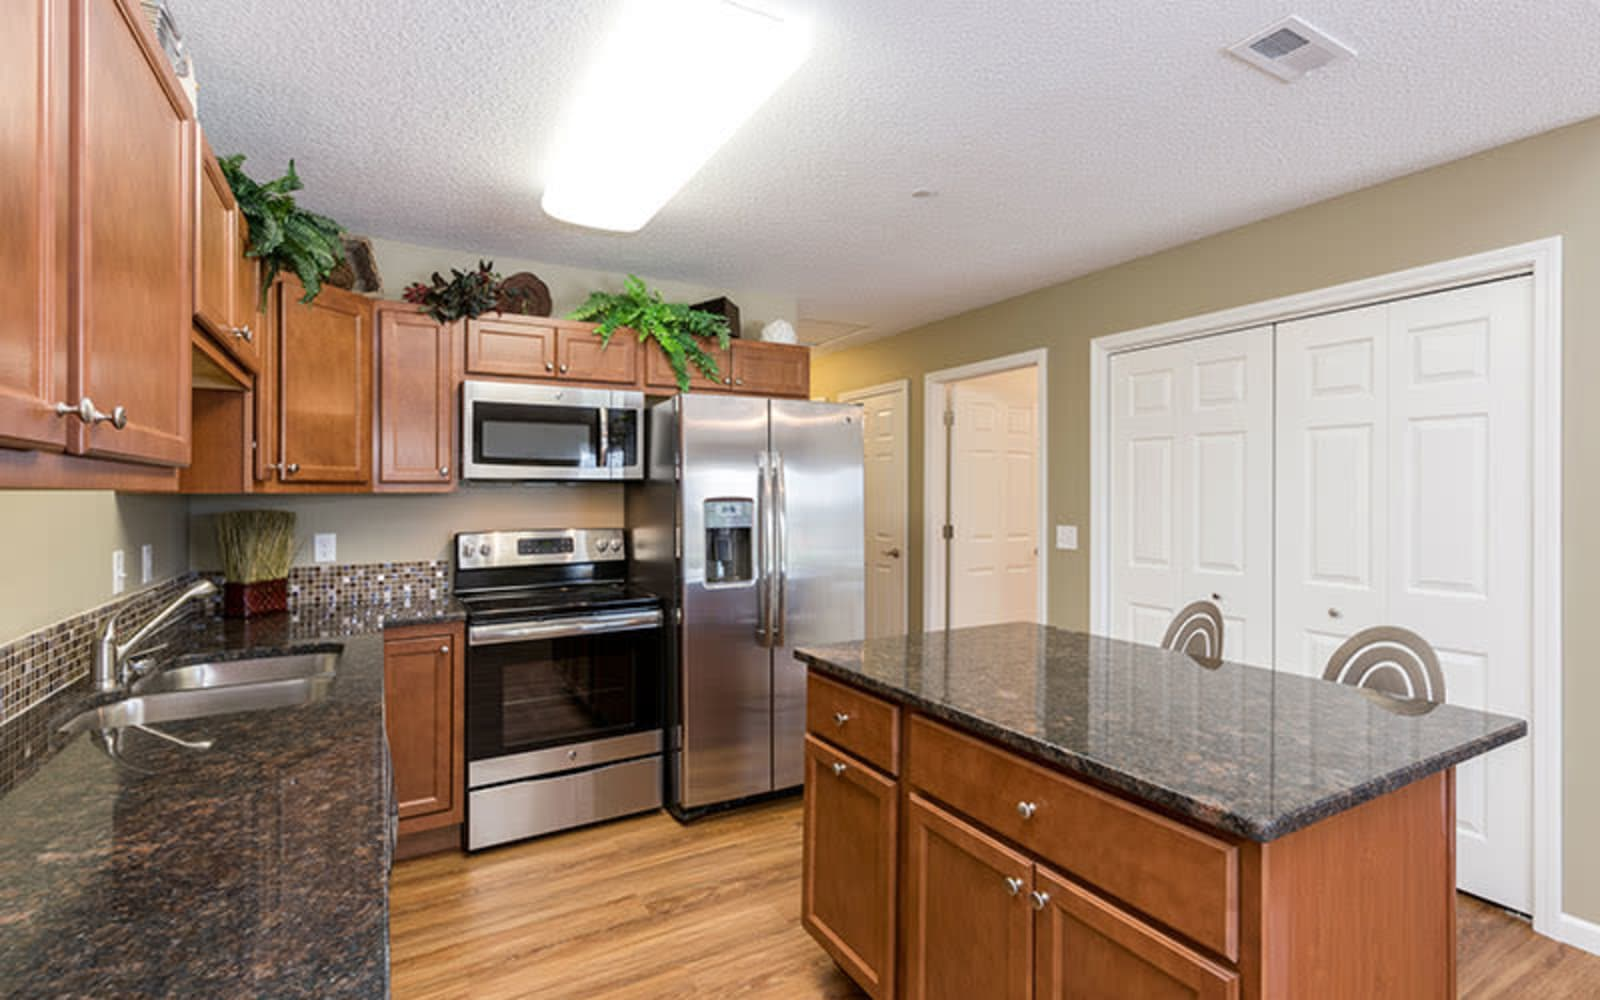 Upgraded appliances in an apartment kitchen at The Landing of Clinton in Clinton, Iowa